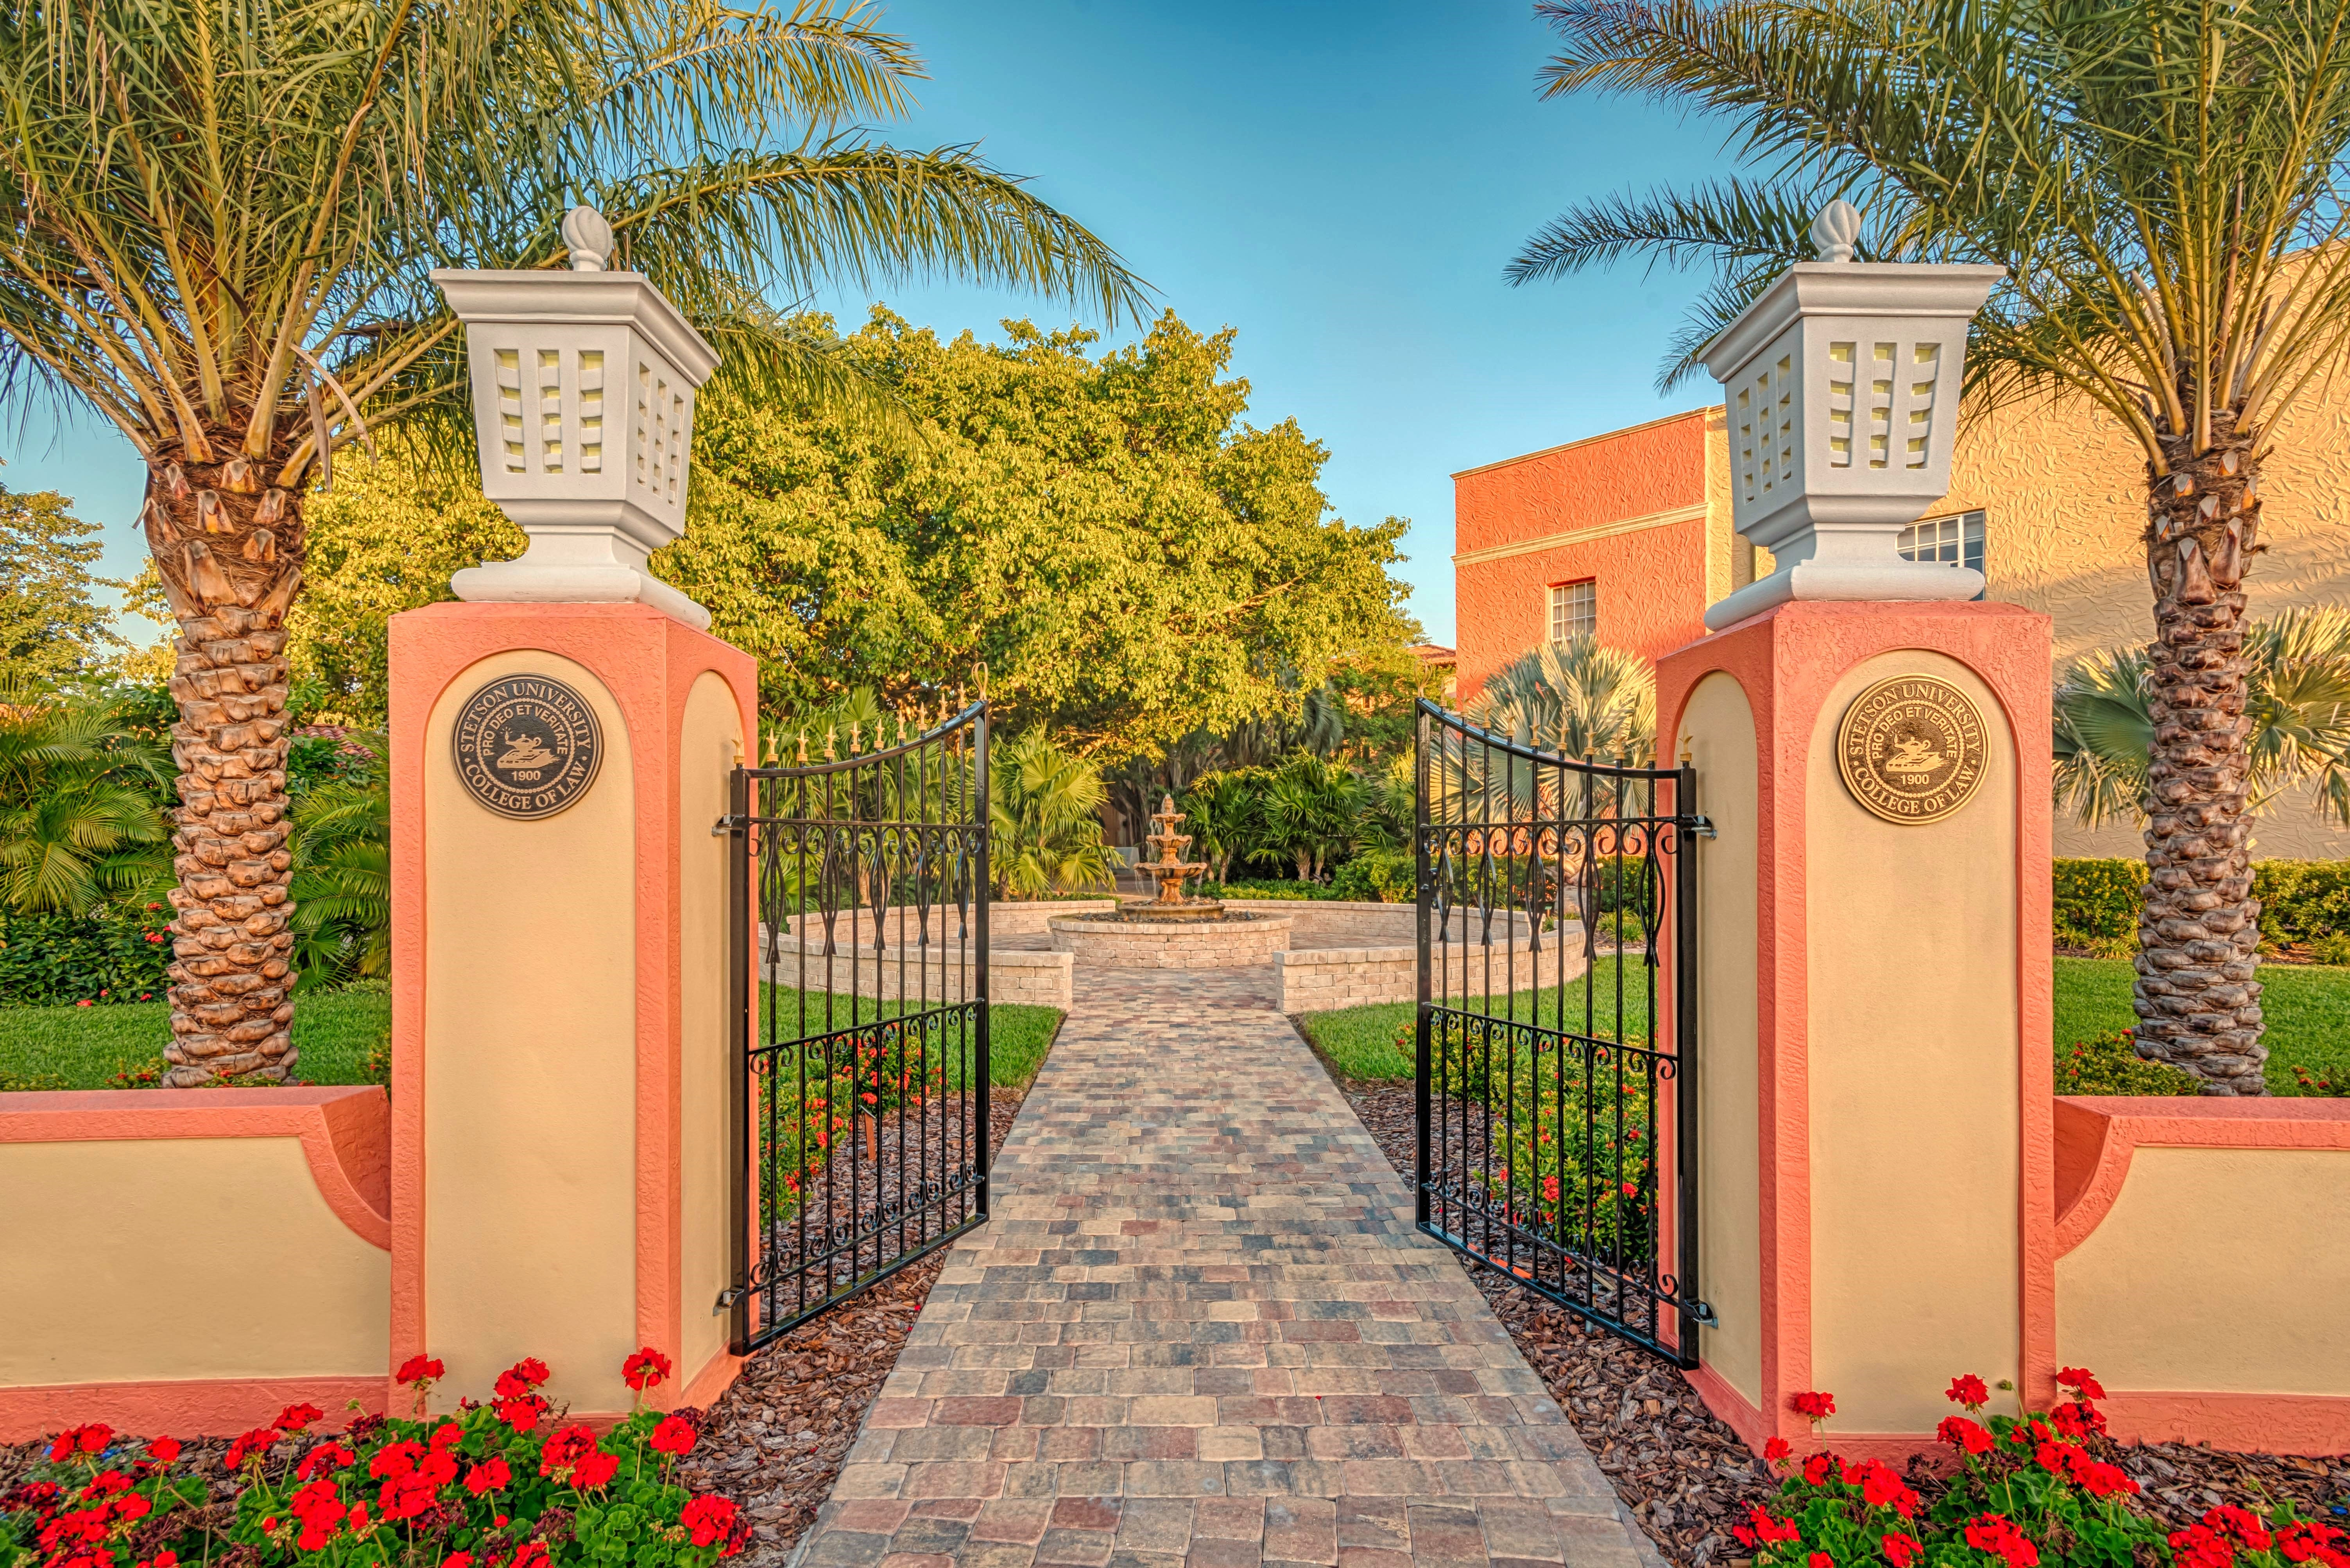 Front gate of Stetson University College of Law